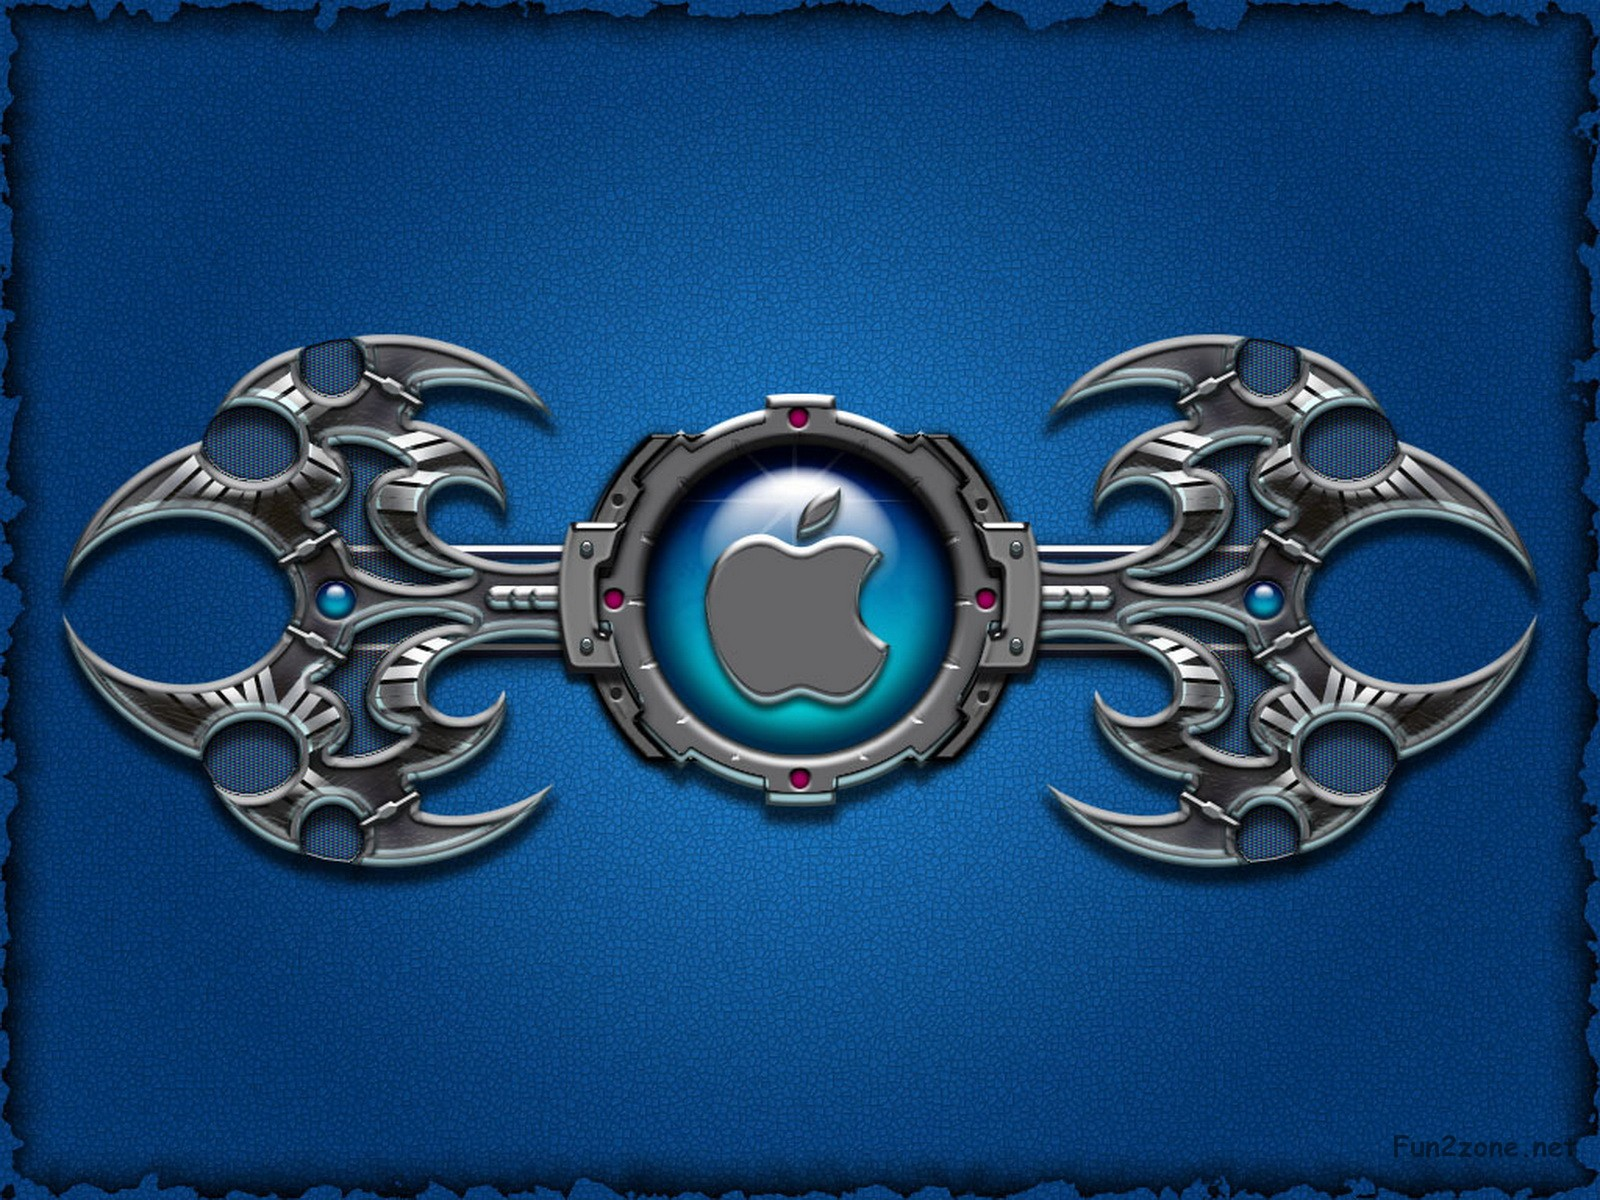 1600x1200px apple 3d logo hd wallpaper - wallpapersafari